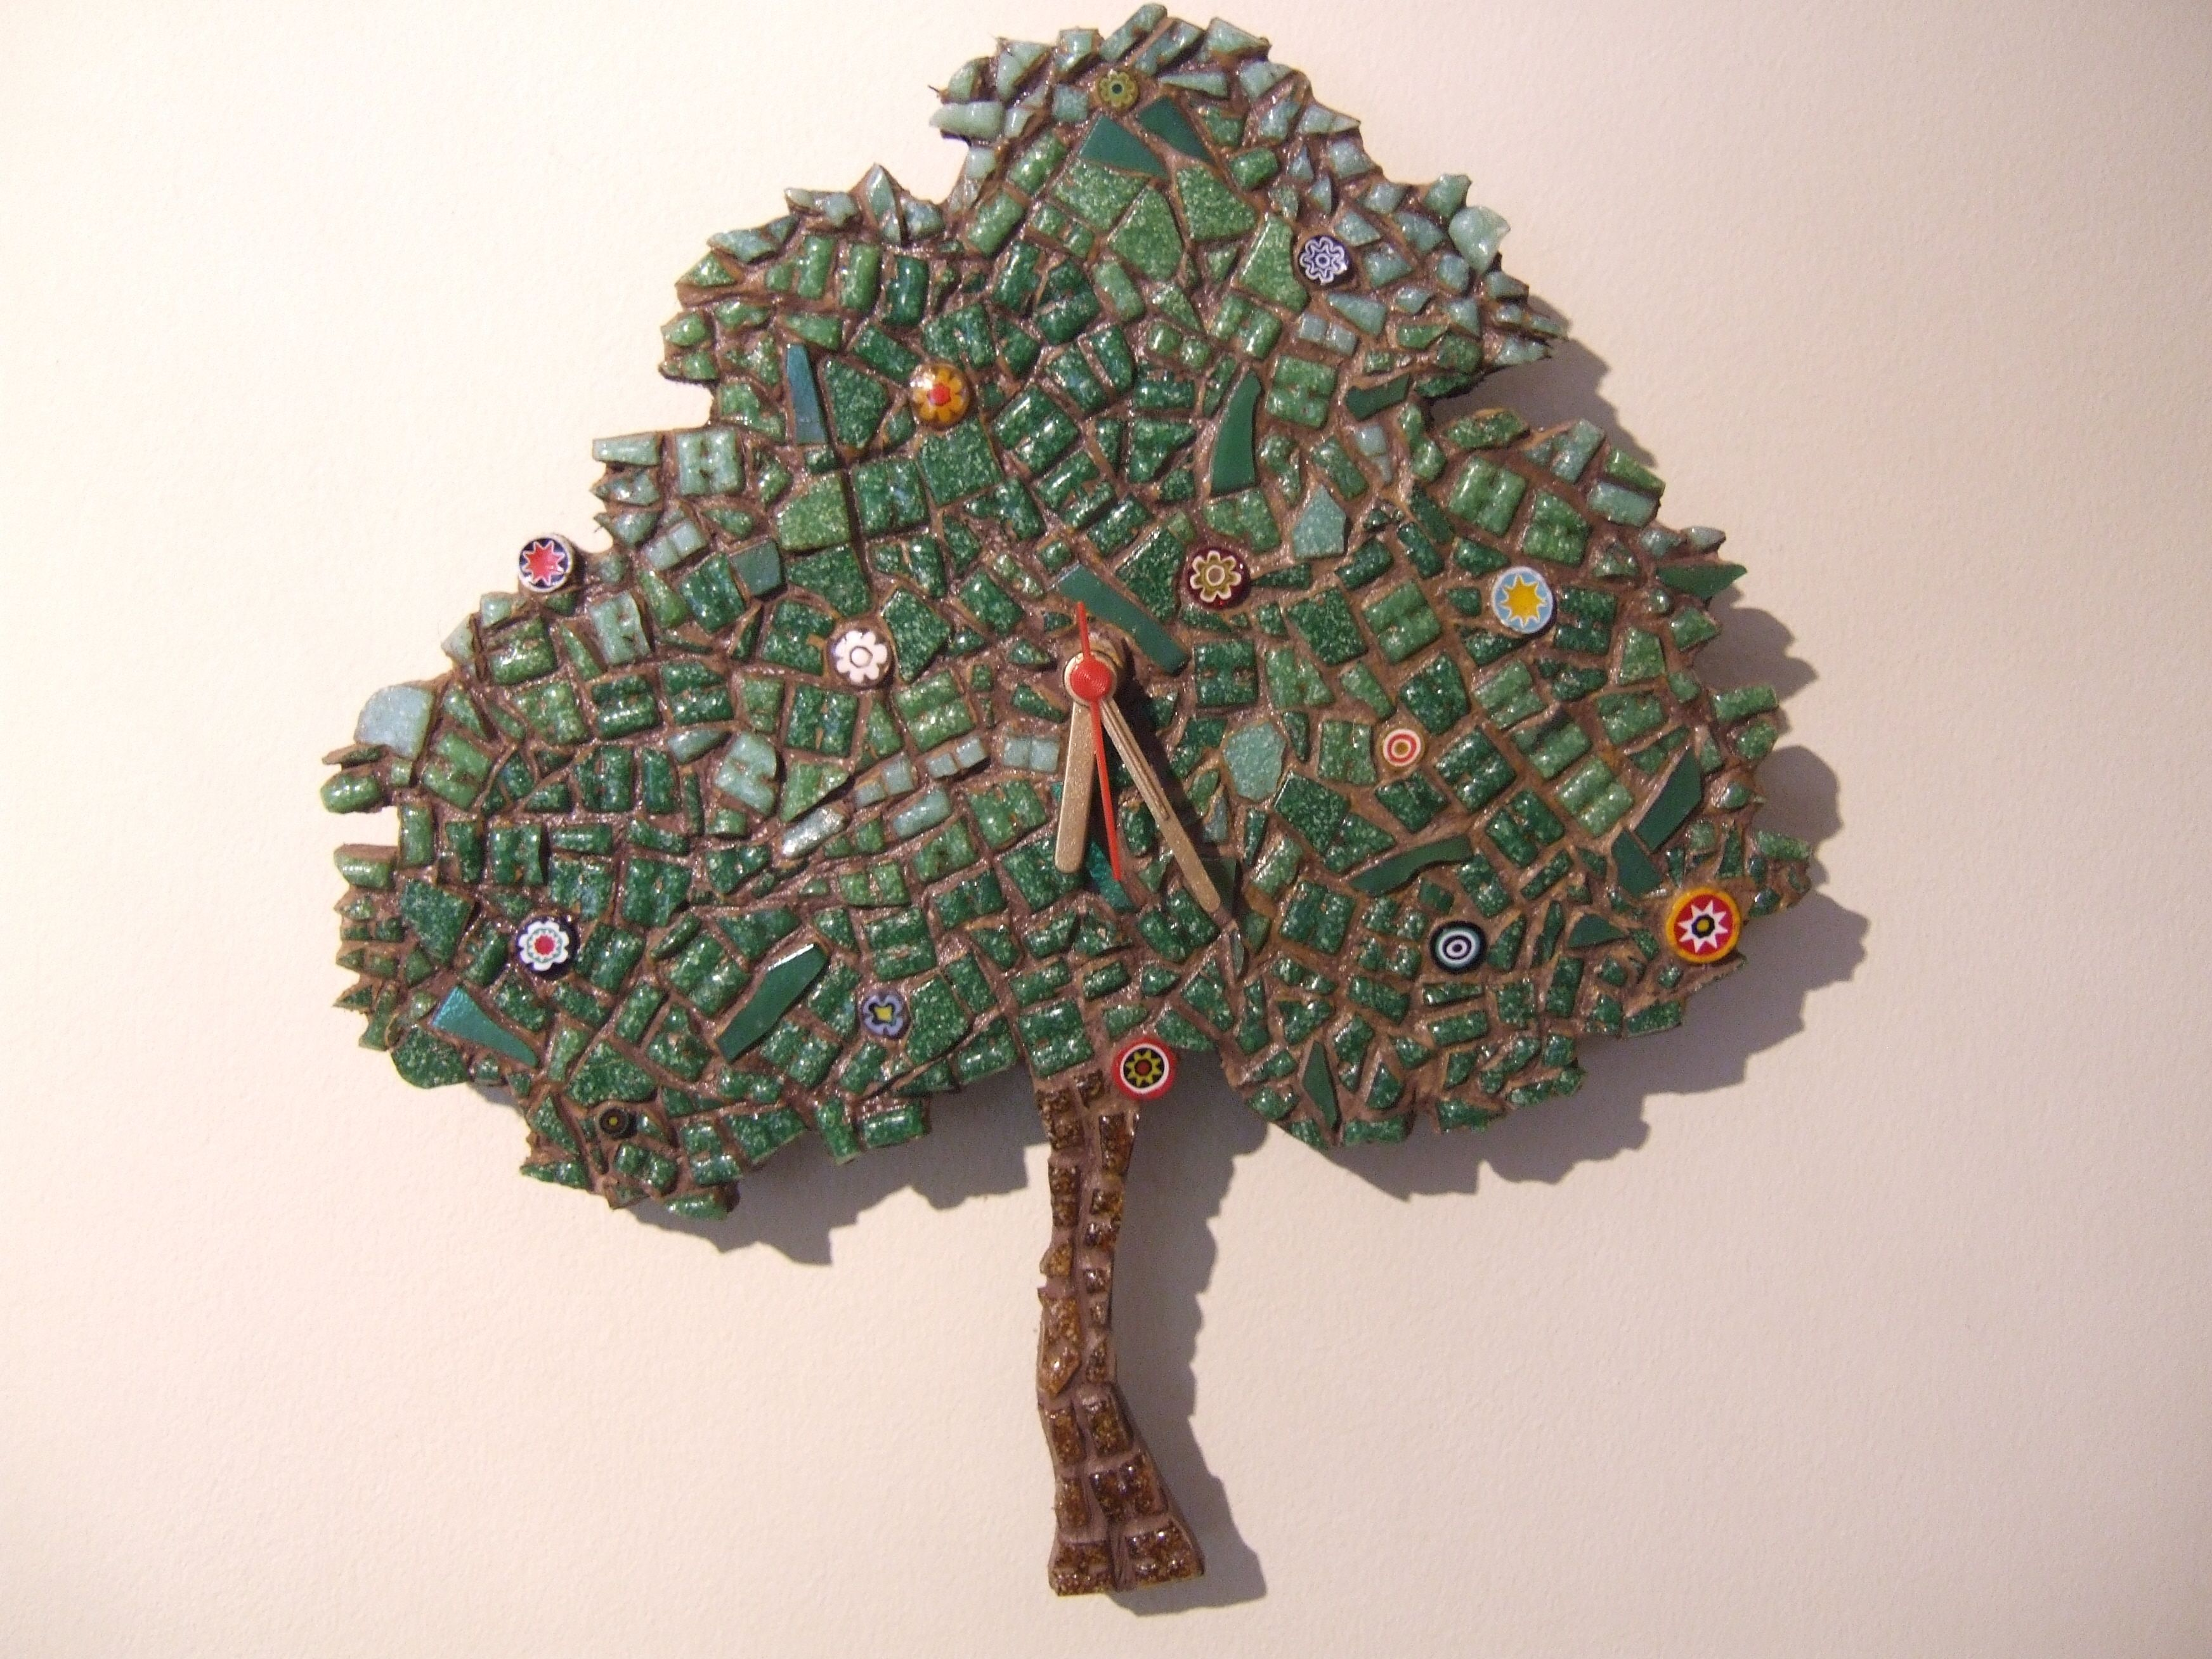 Another tree clock by Ayesha James